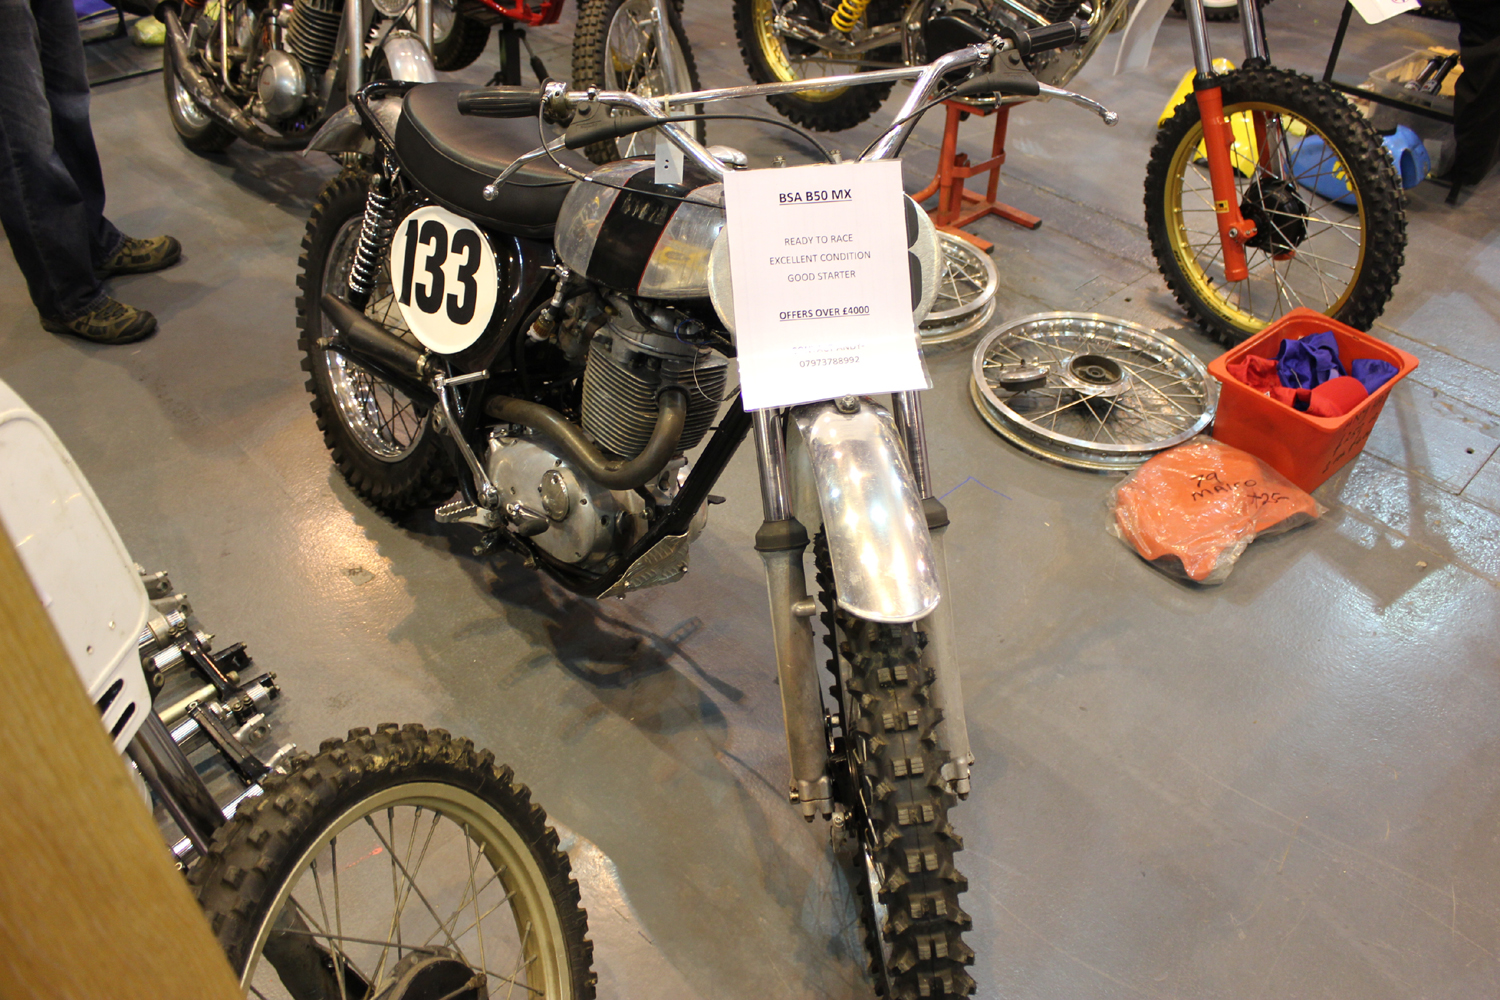 classicdirtbikerider.com-photo by Mr J-2015 Telford classic dirt bike show-BSA B50 SCRAMBLER FOR SALE £4000